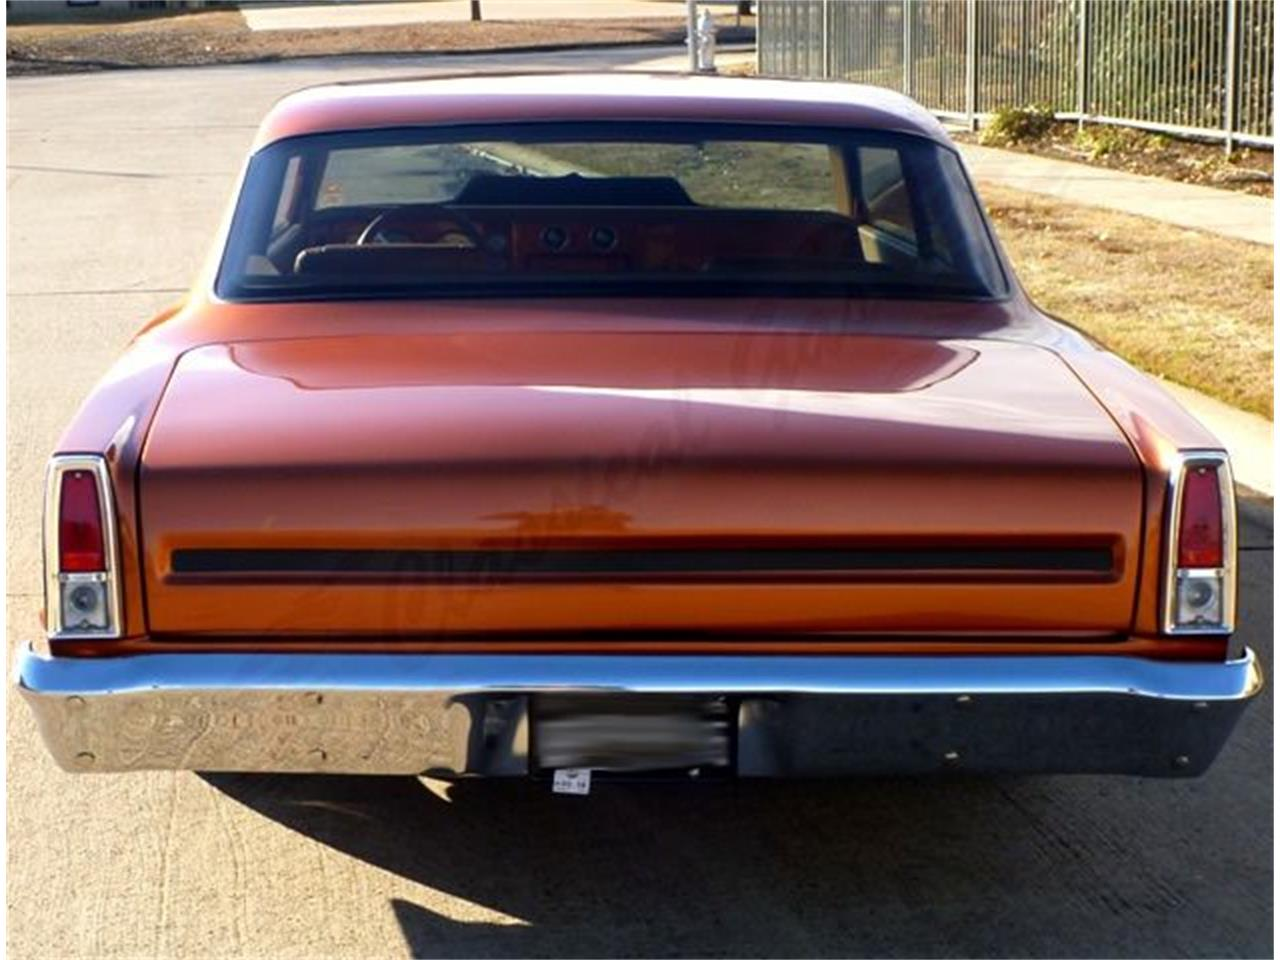 Large Picture of Classic 1966 Chevrolet Nova located in Texas - $120,000.00 Offered by Classical Gas Enterprises - LTOC